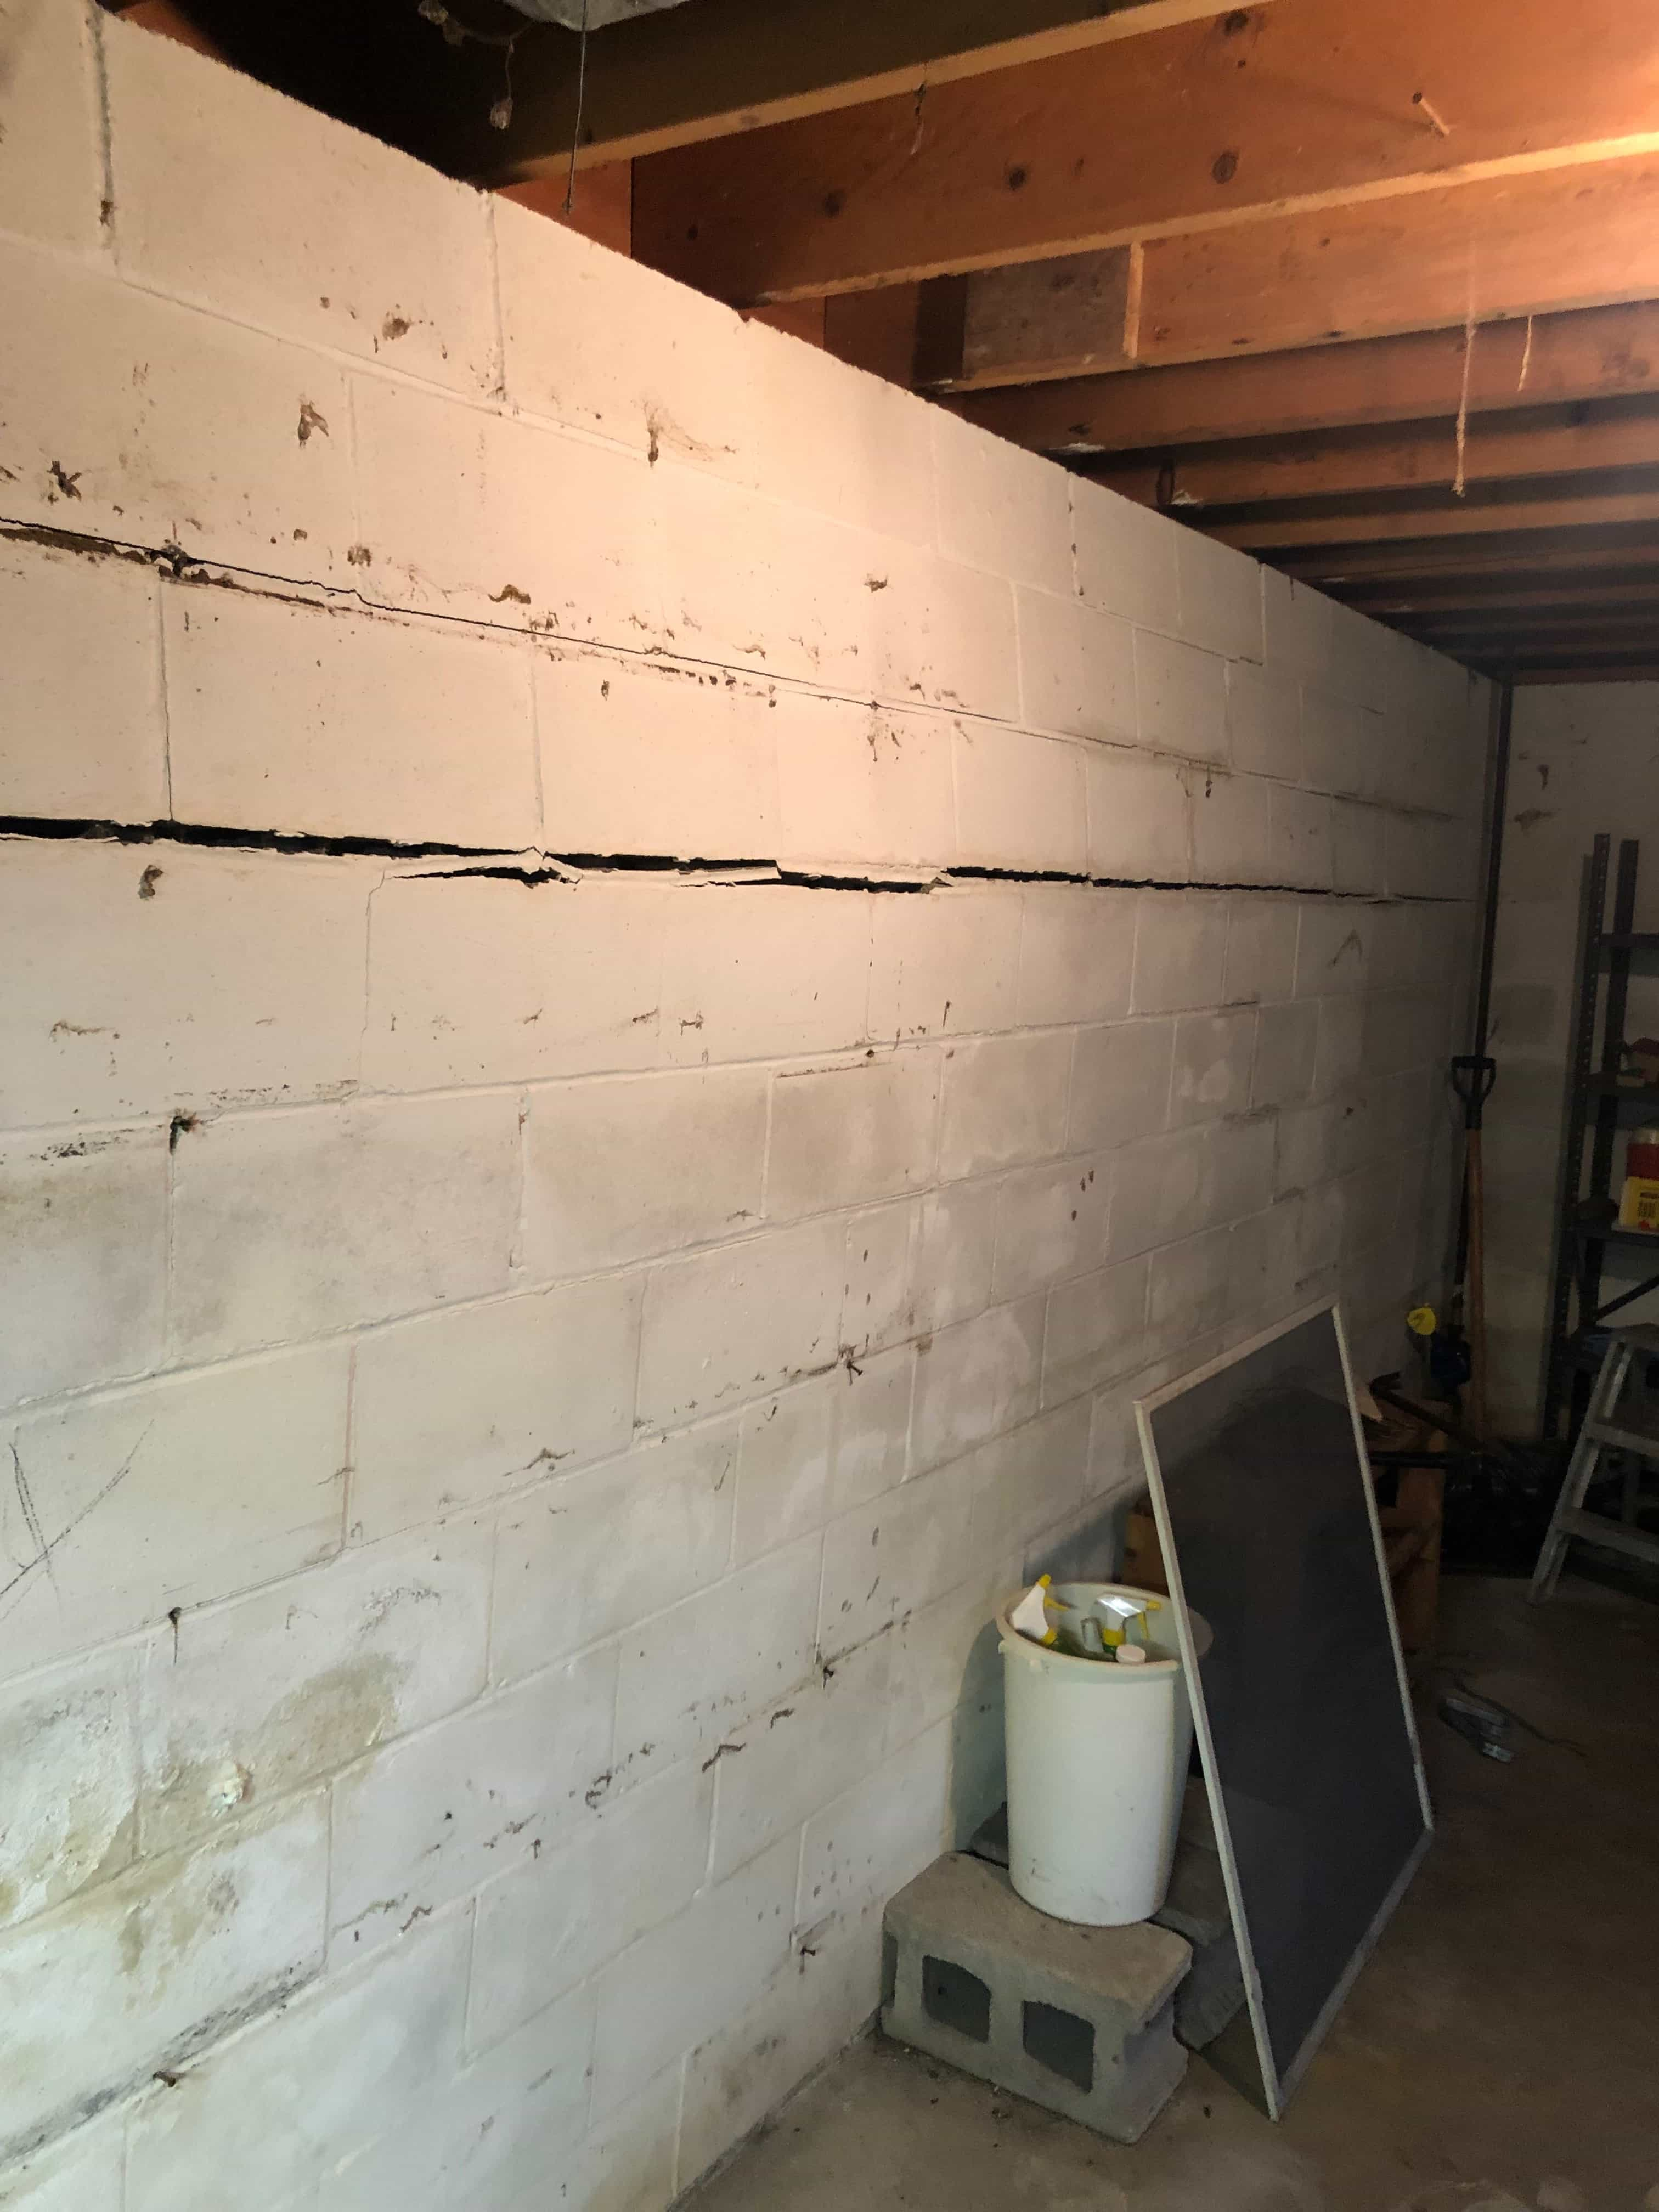 How Serious is a Horizontal Foundation Crack?